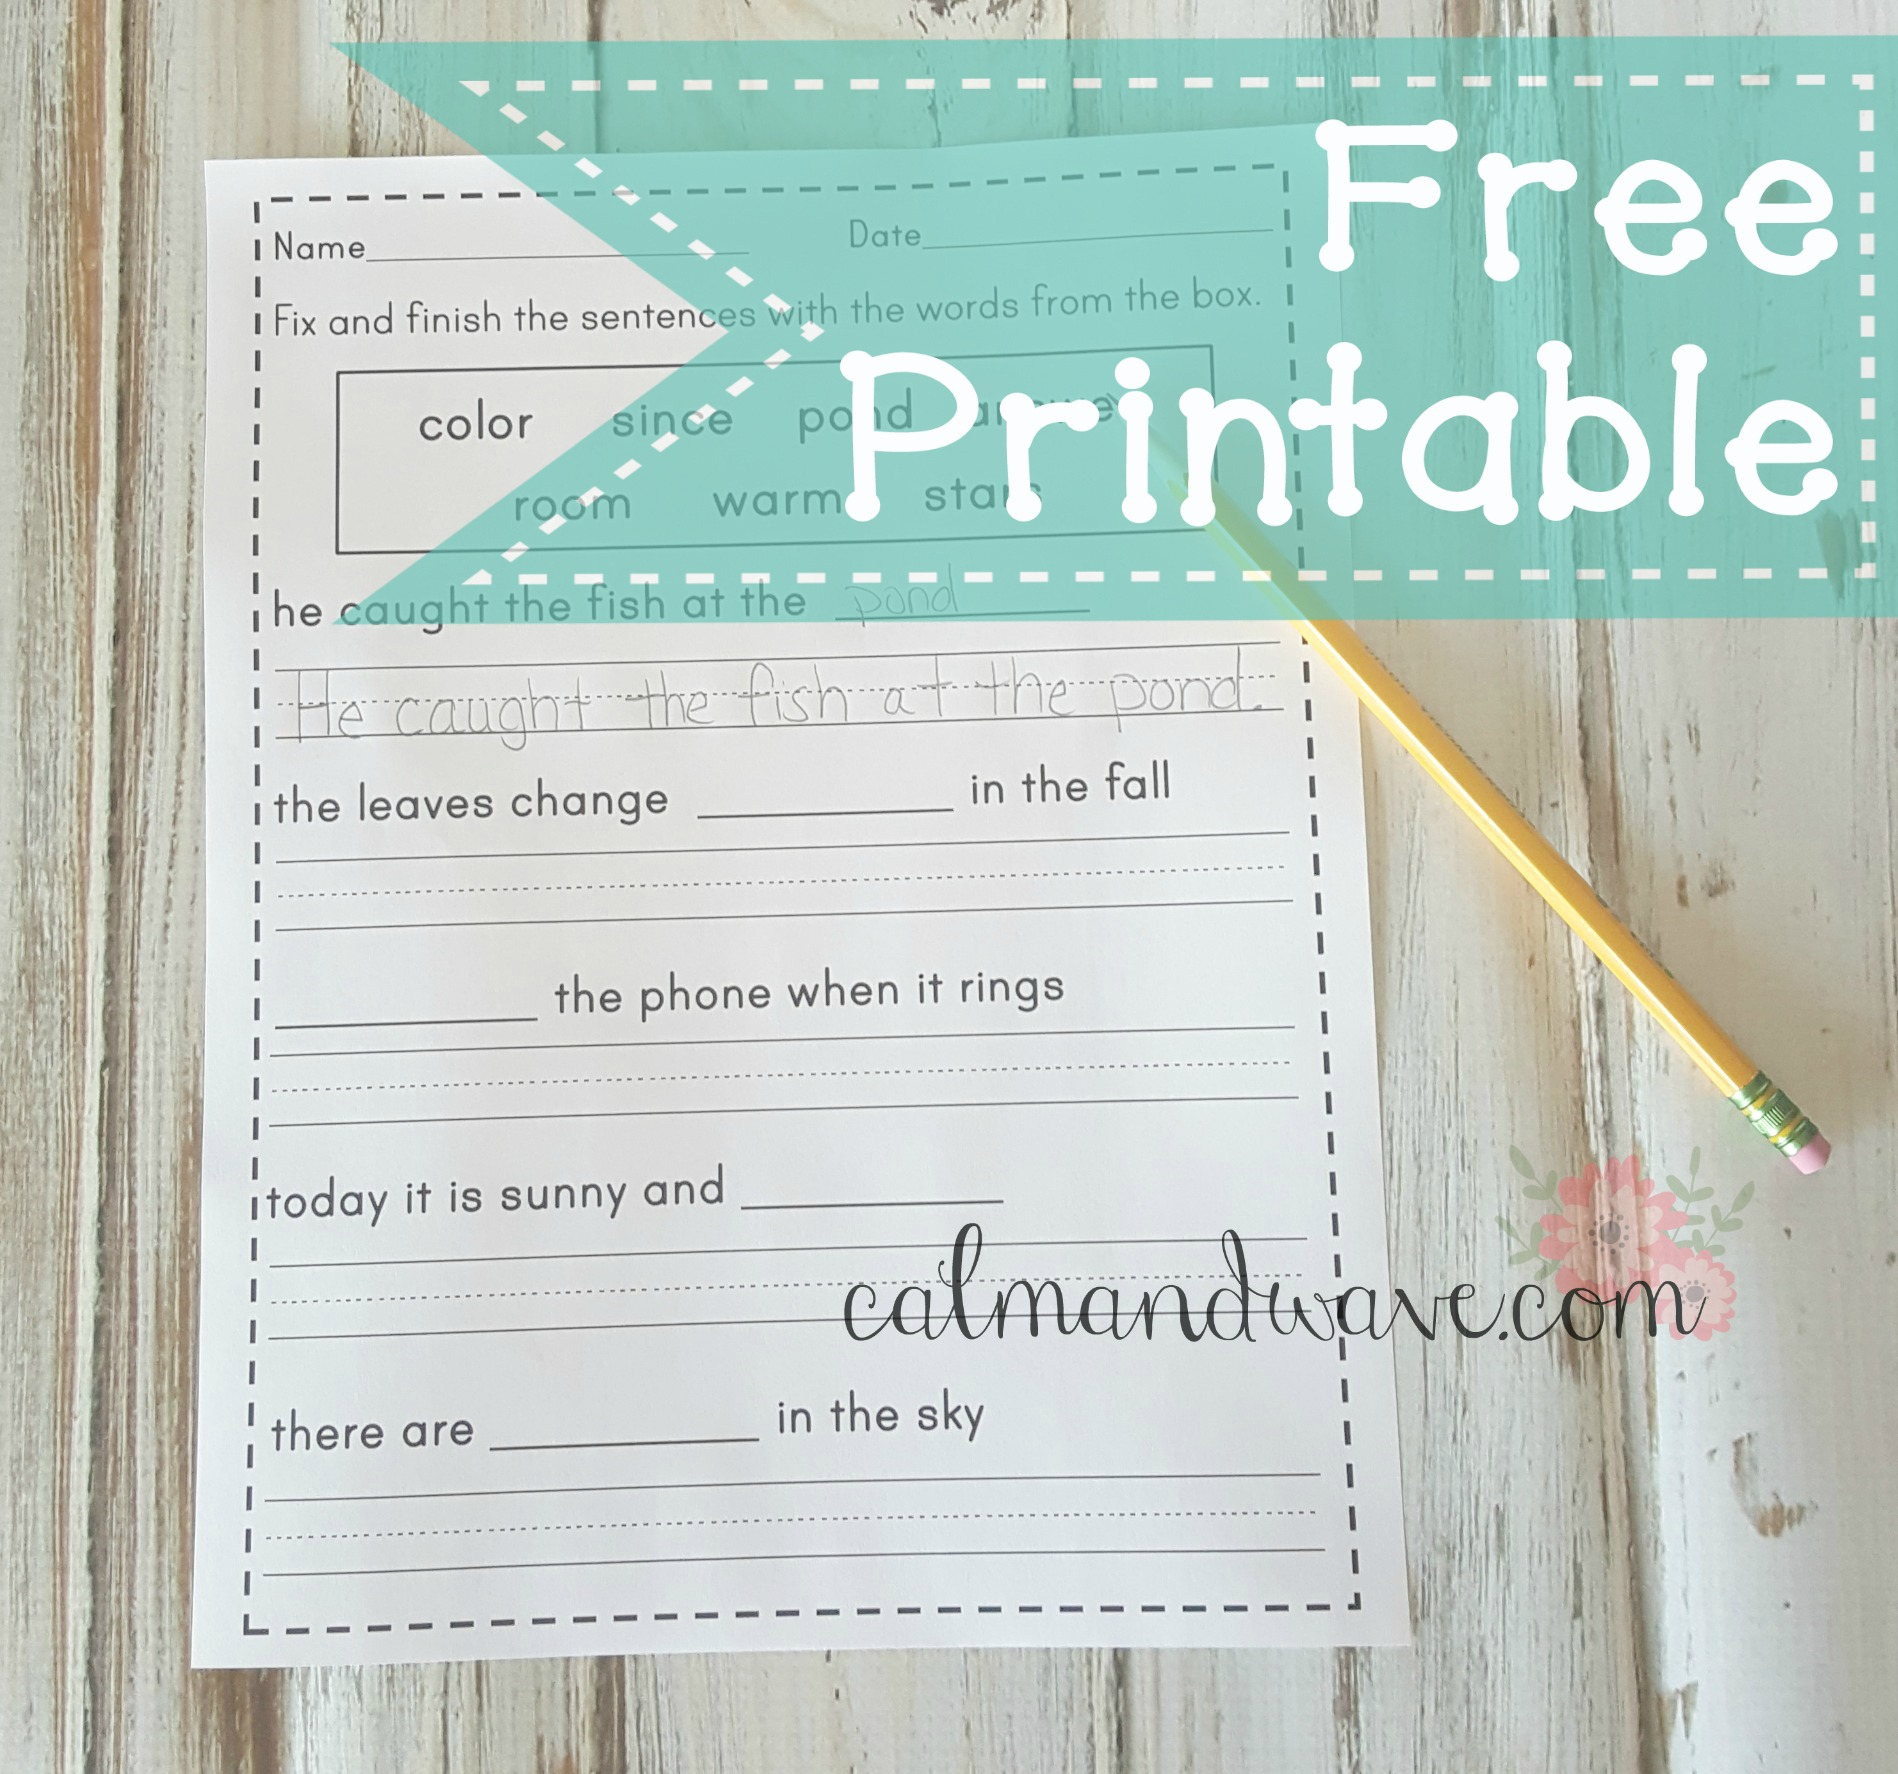 Worksheet. Free Handwriting Curriculum. Wosenly Free Worksheet